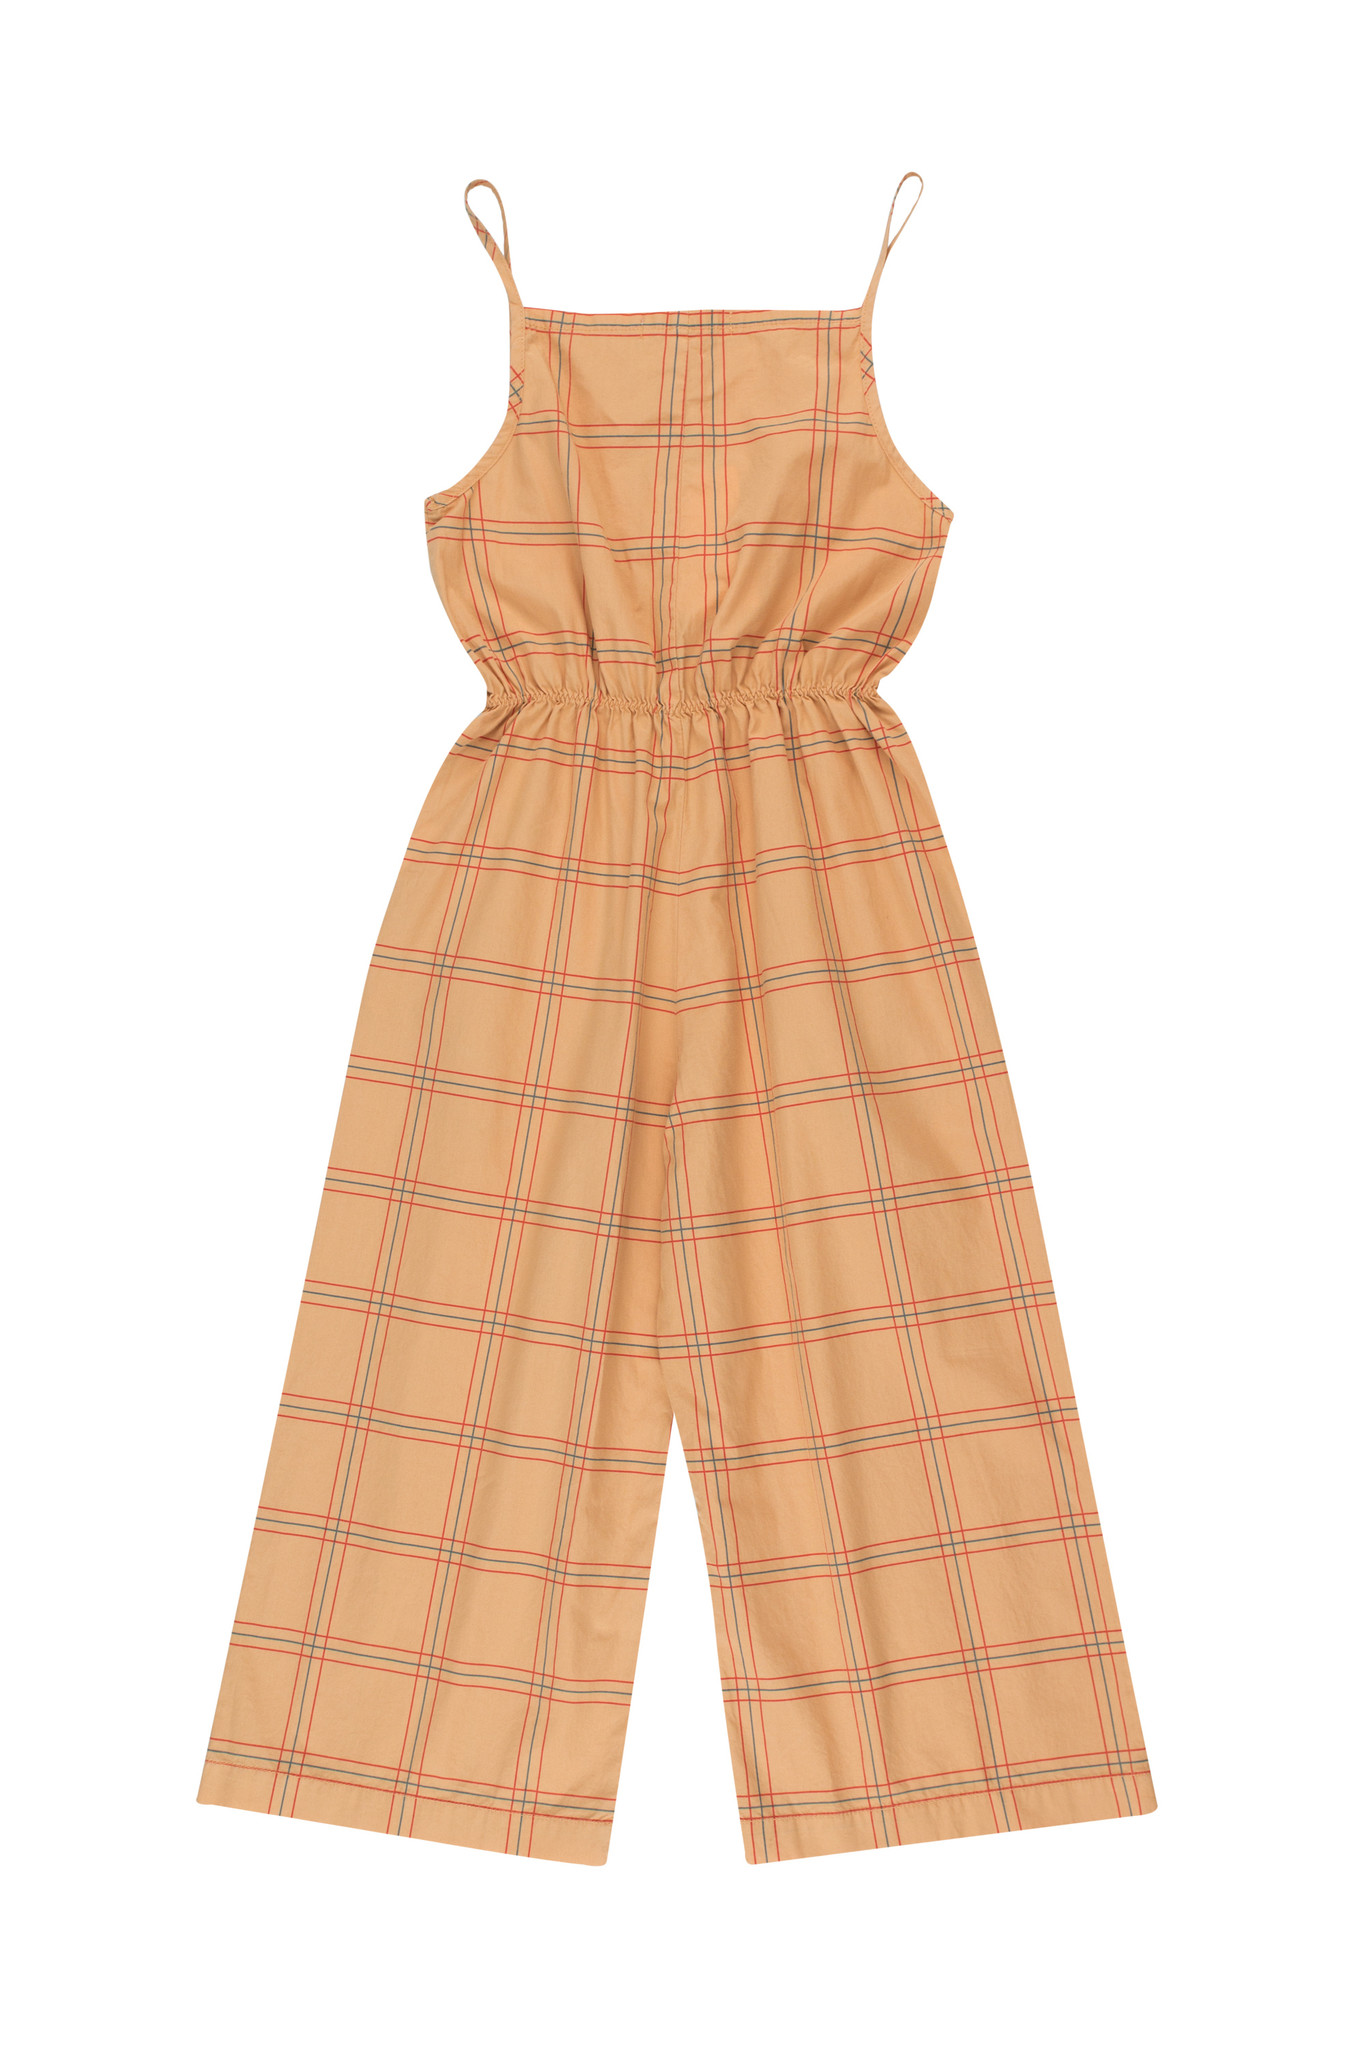 CHECK JUMPSUIT - Toffee / Red-3